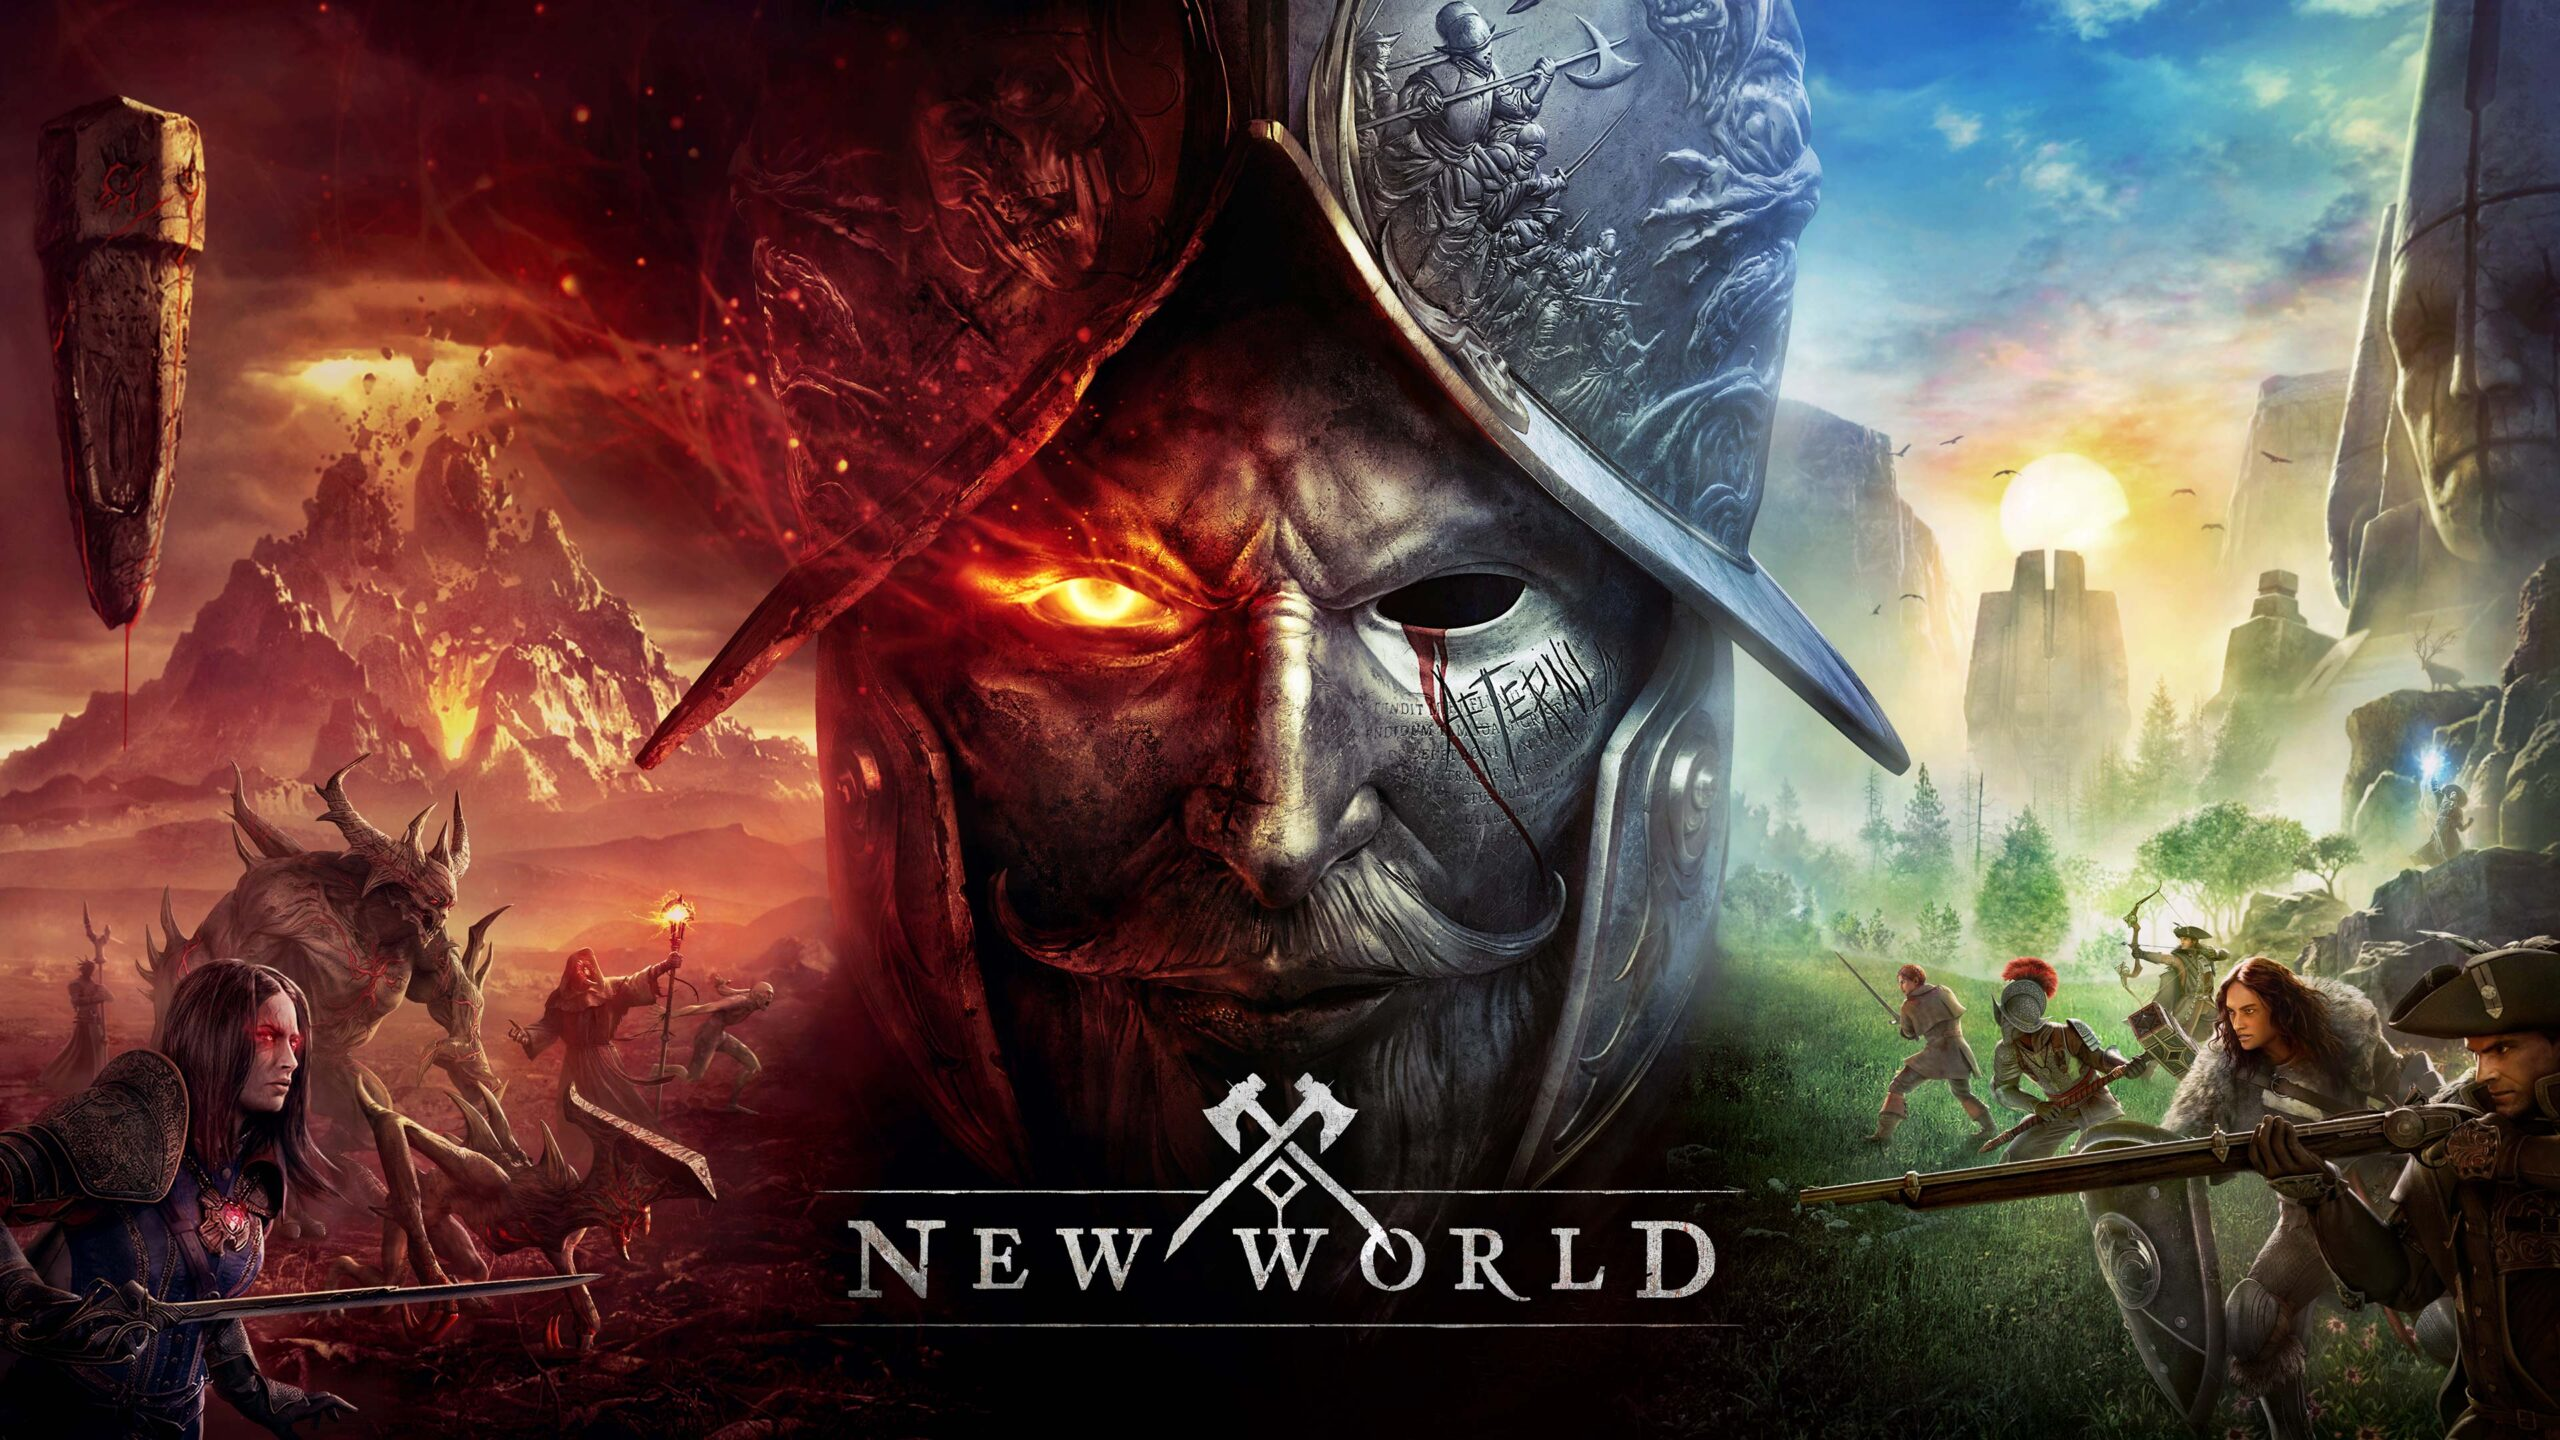 New World Servers are currently down due to short maintenace - Future Game Releases